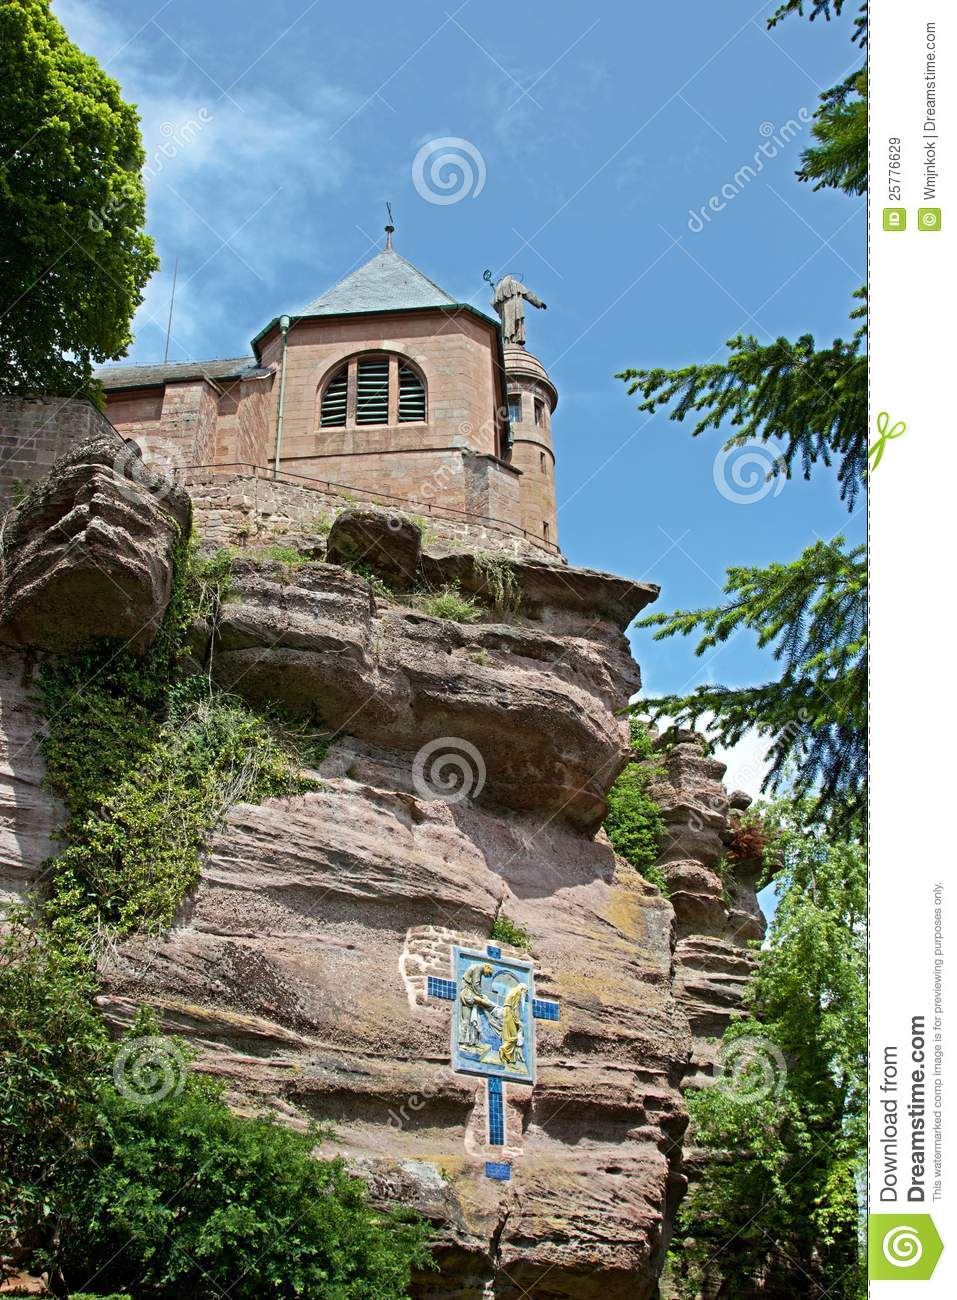 le mont sainte odile royalty free stock images image 25776629